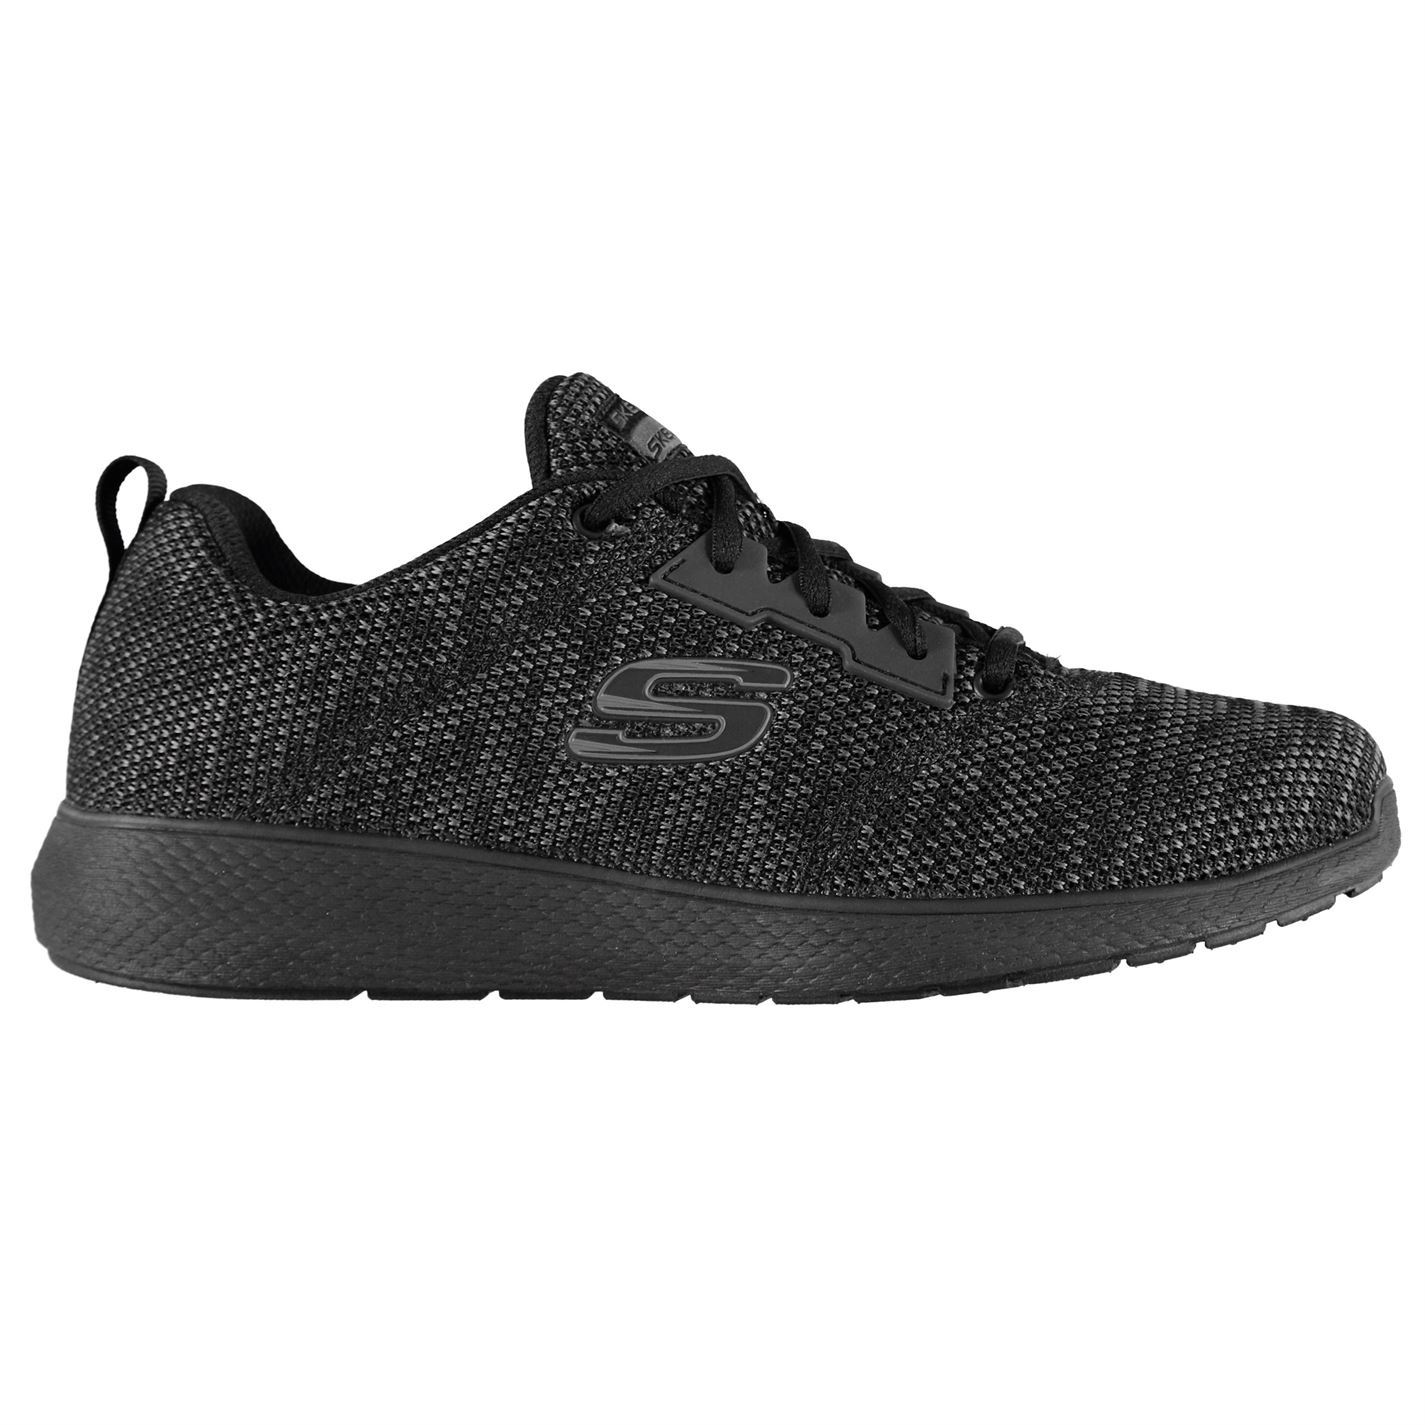 trolebús Samuel Glamour  buy > skechers summit trainers, Up to 79% OFF